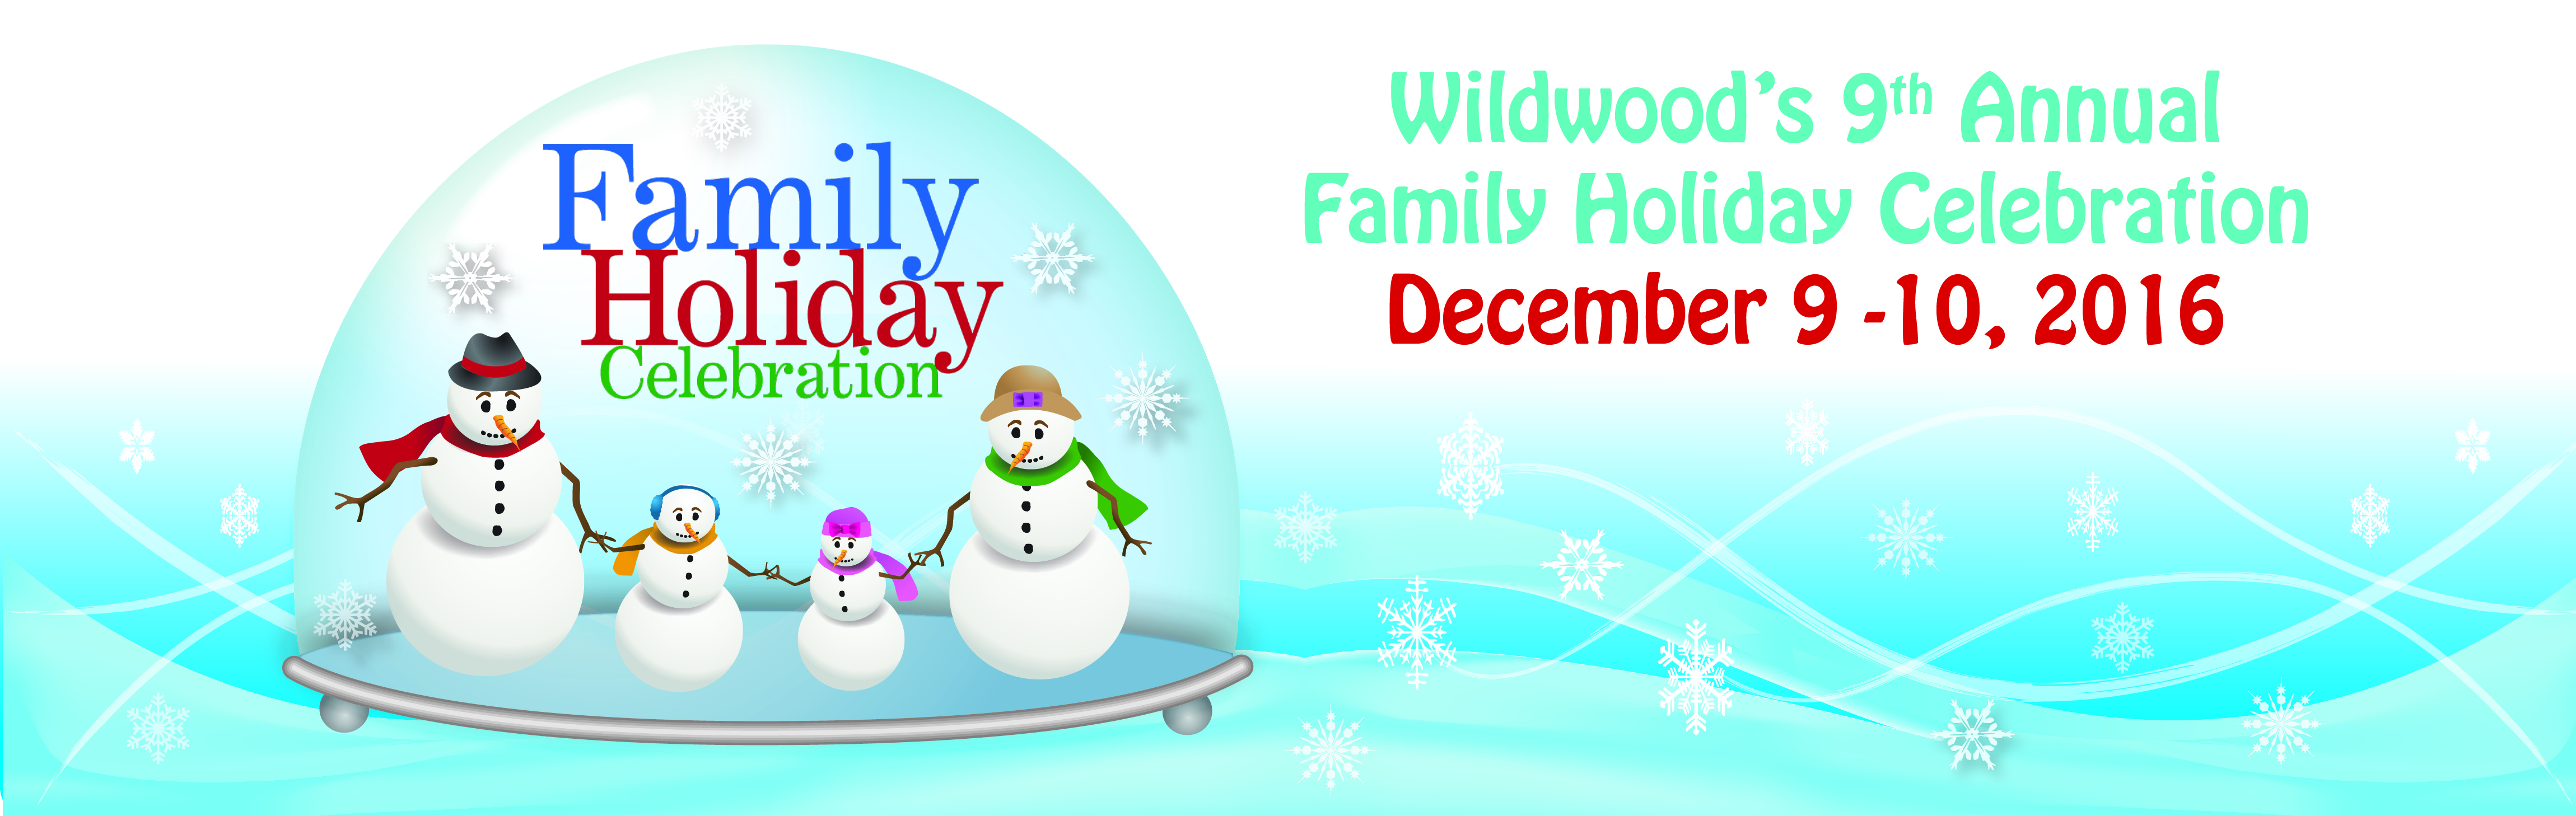 ww_familyholidaycelebration_header2016b